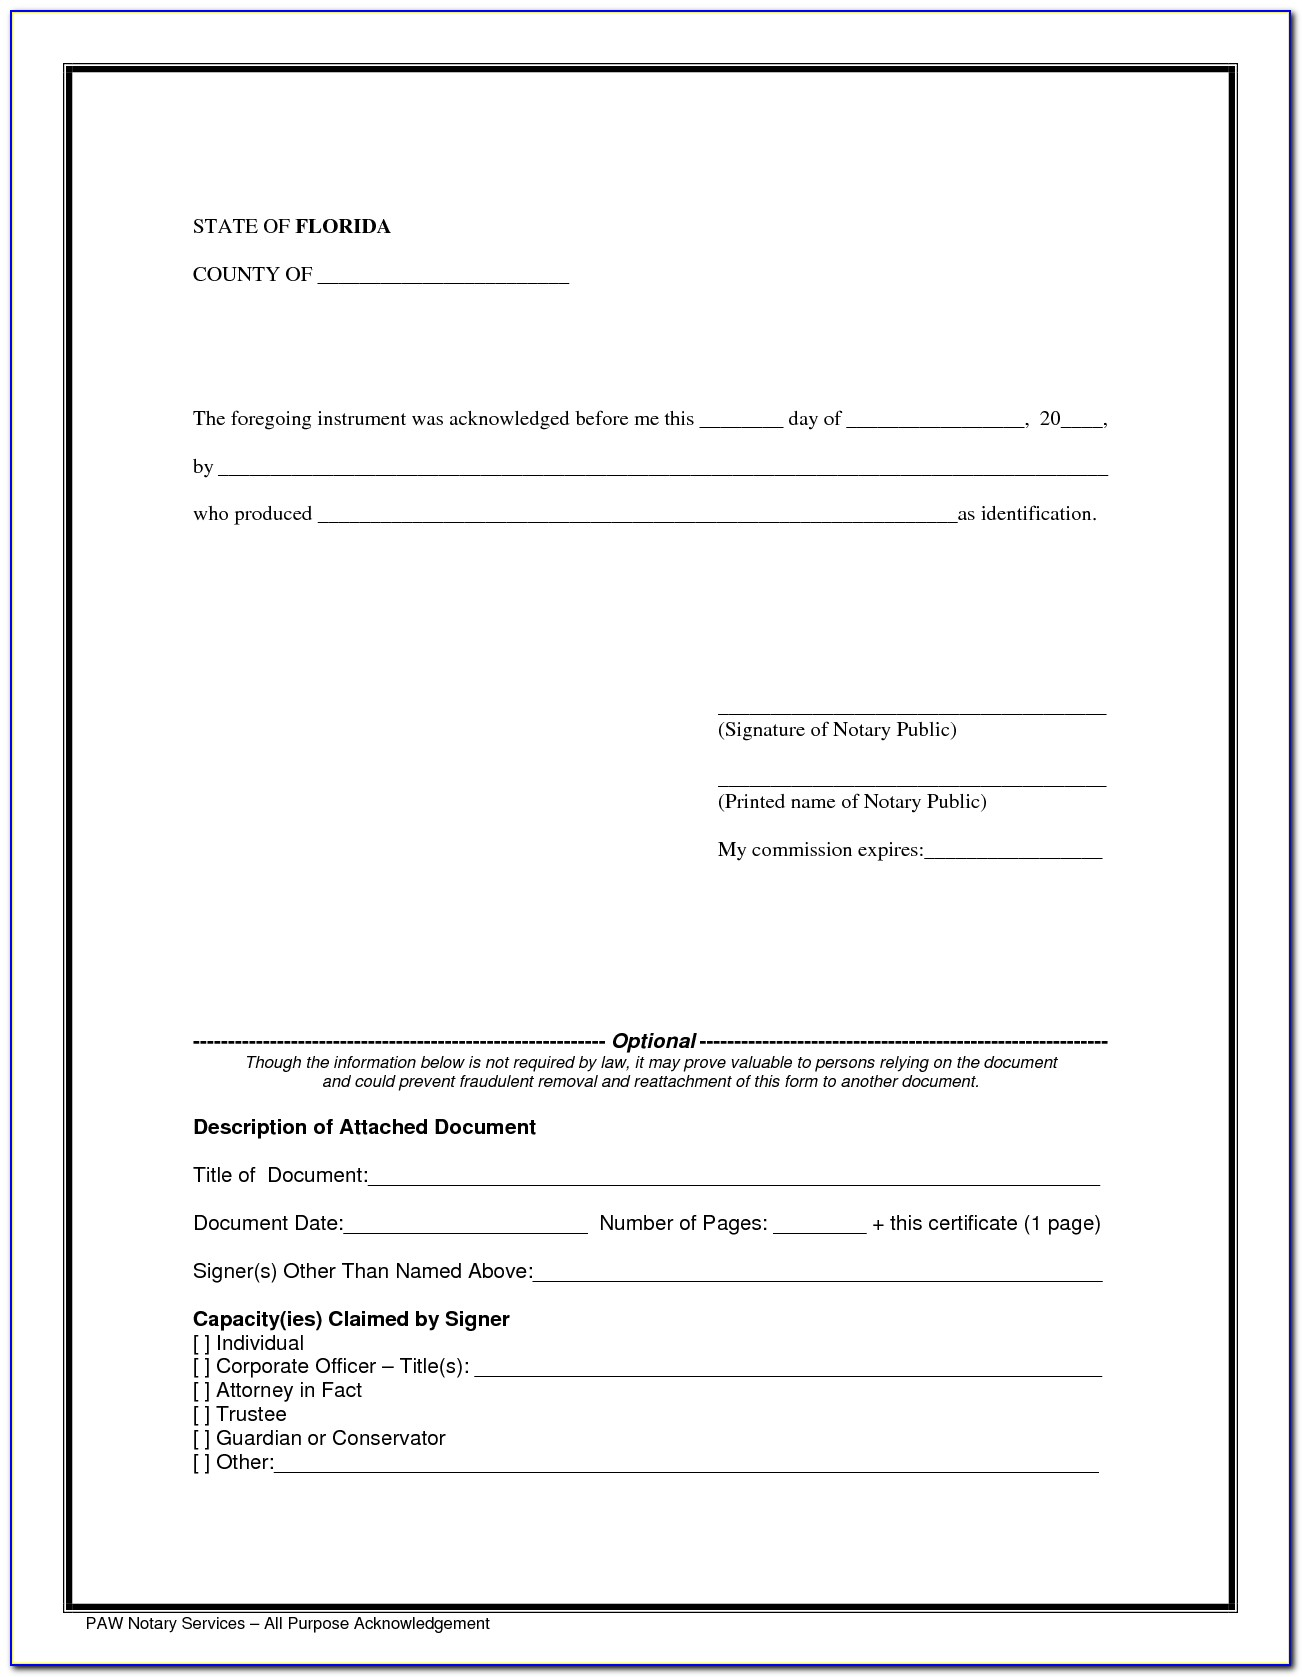 Texas Notary Acceptable Forms Of Id